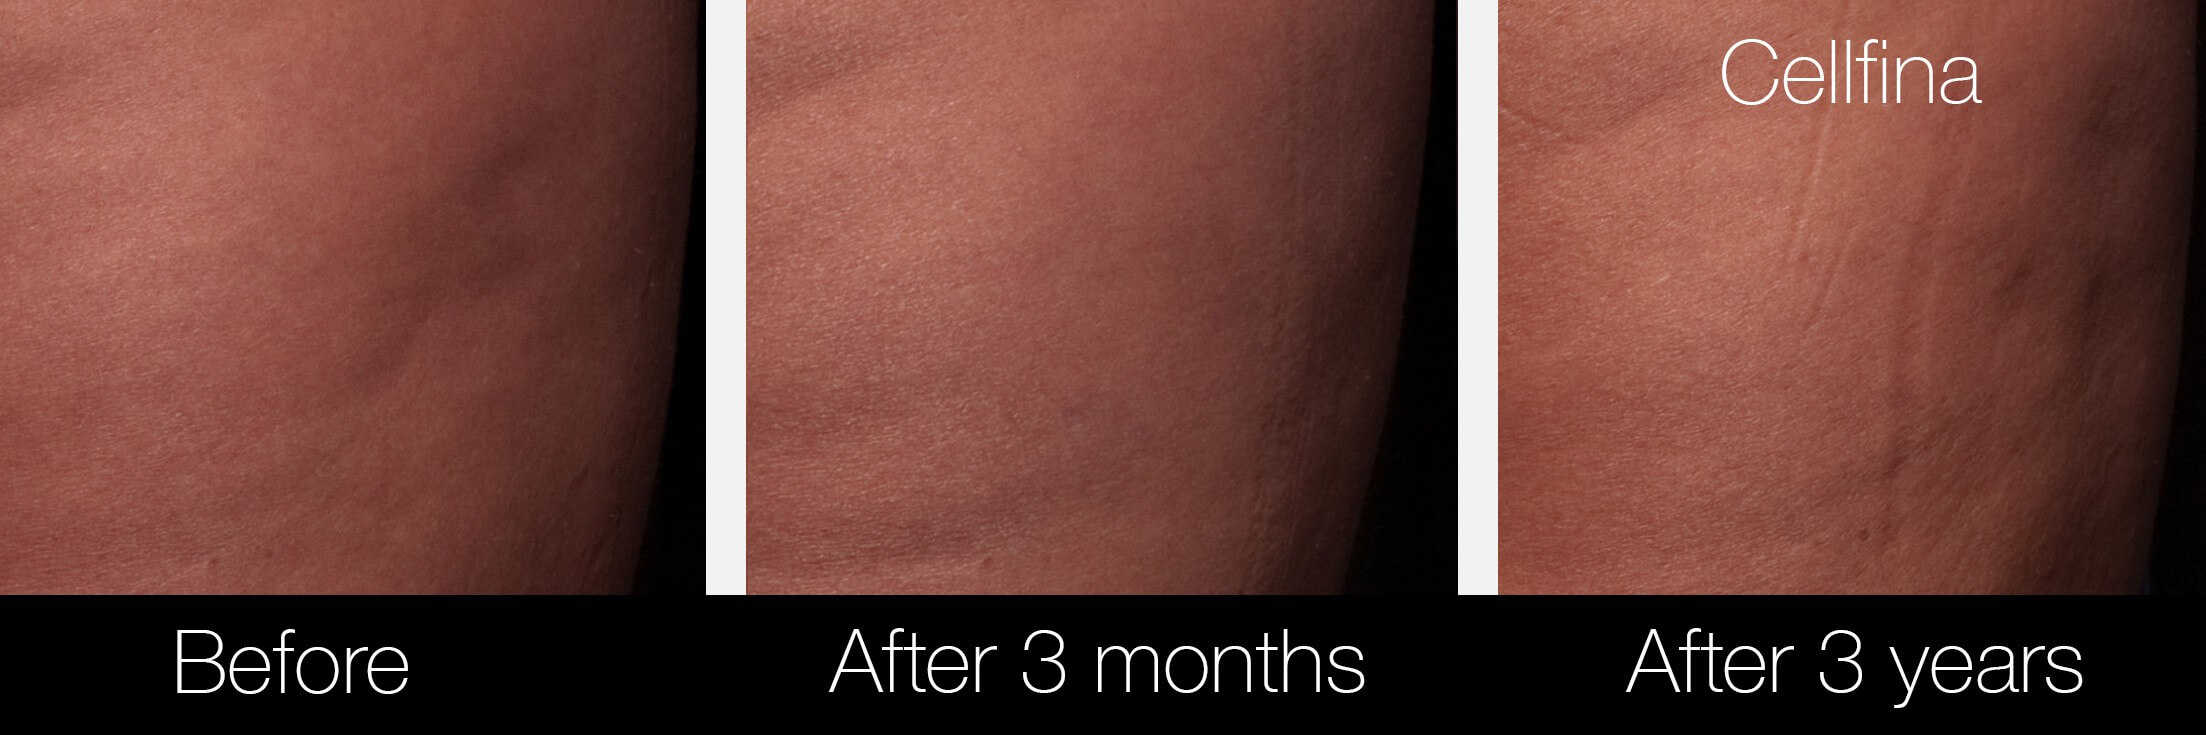 Cellfina Cellulite Treatment - Before and After Gallery – Photo 10